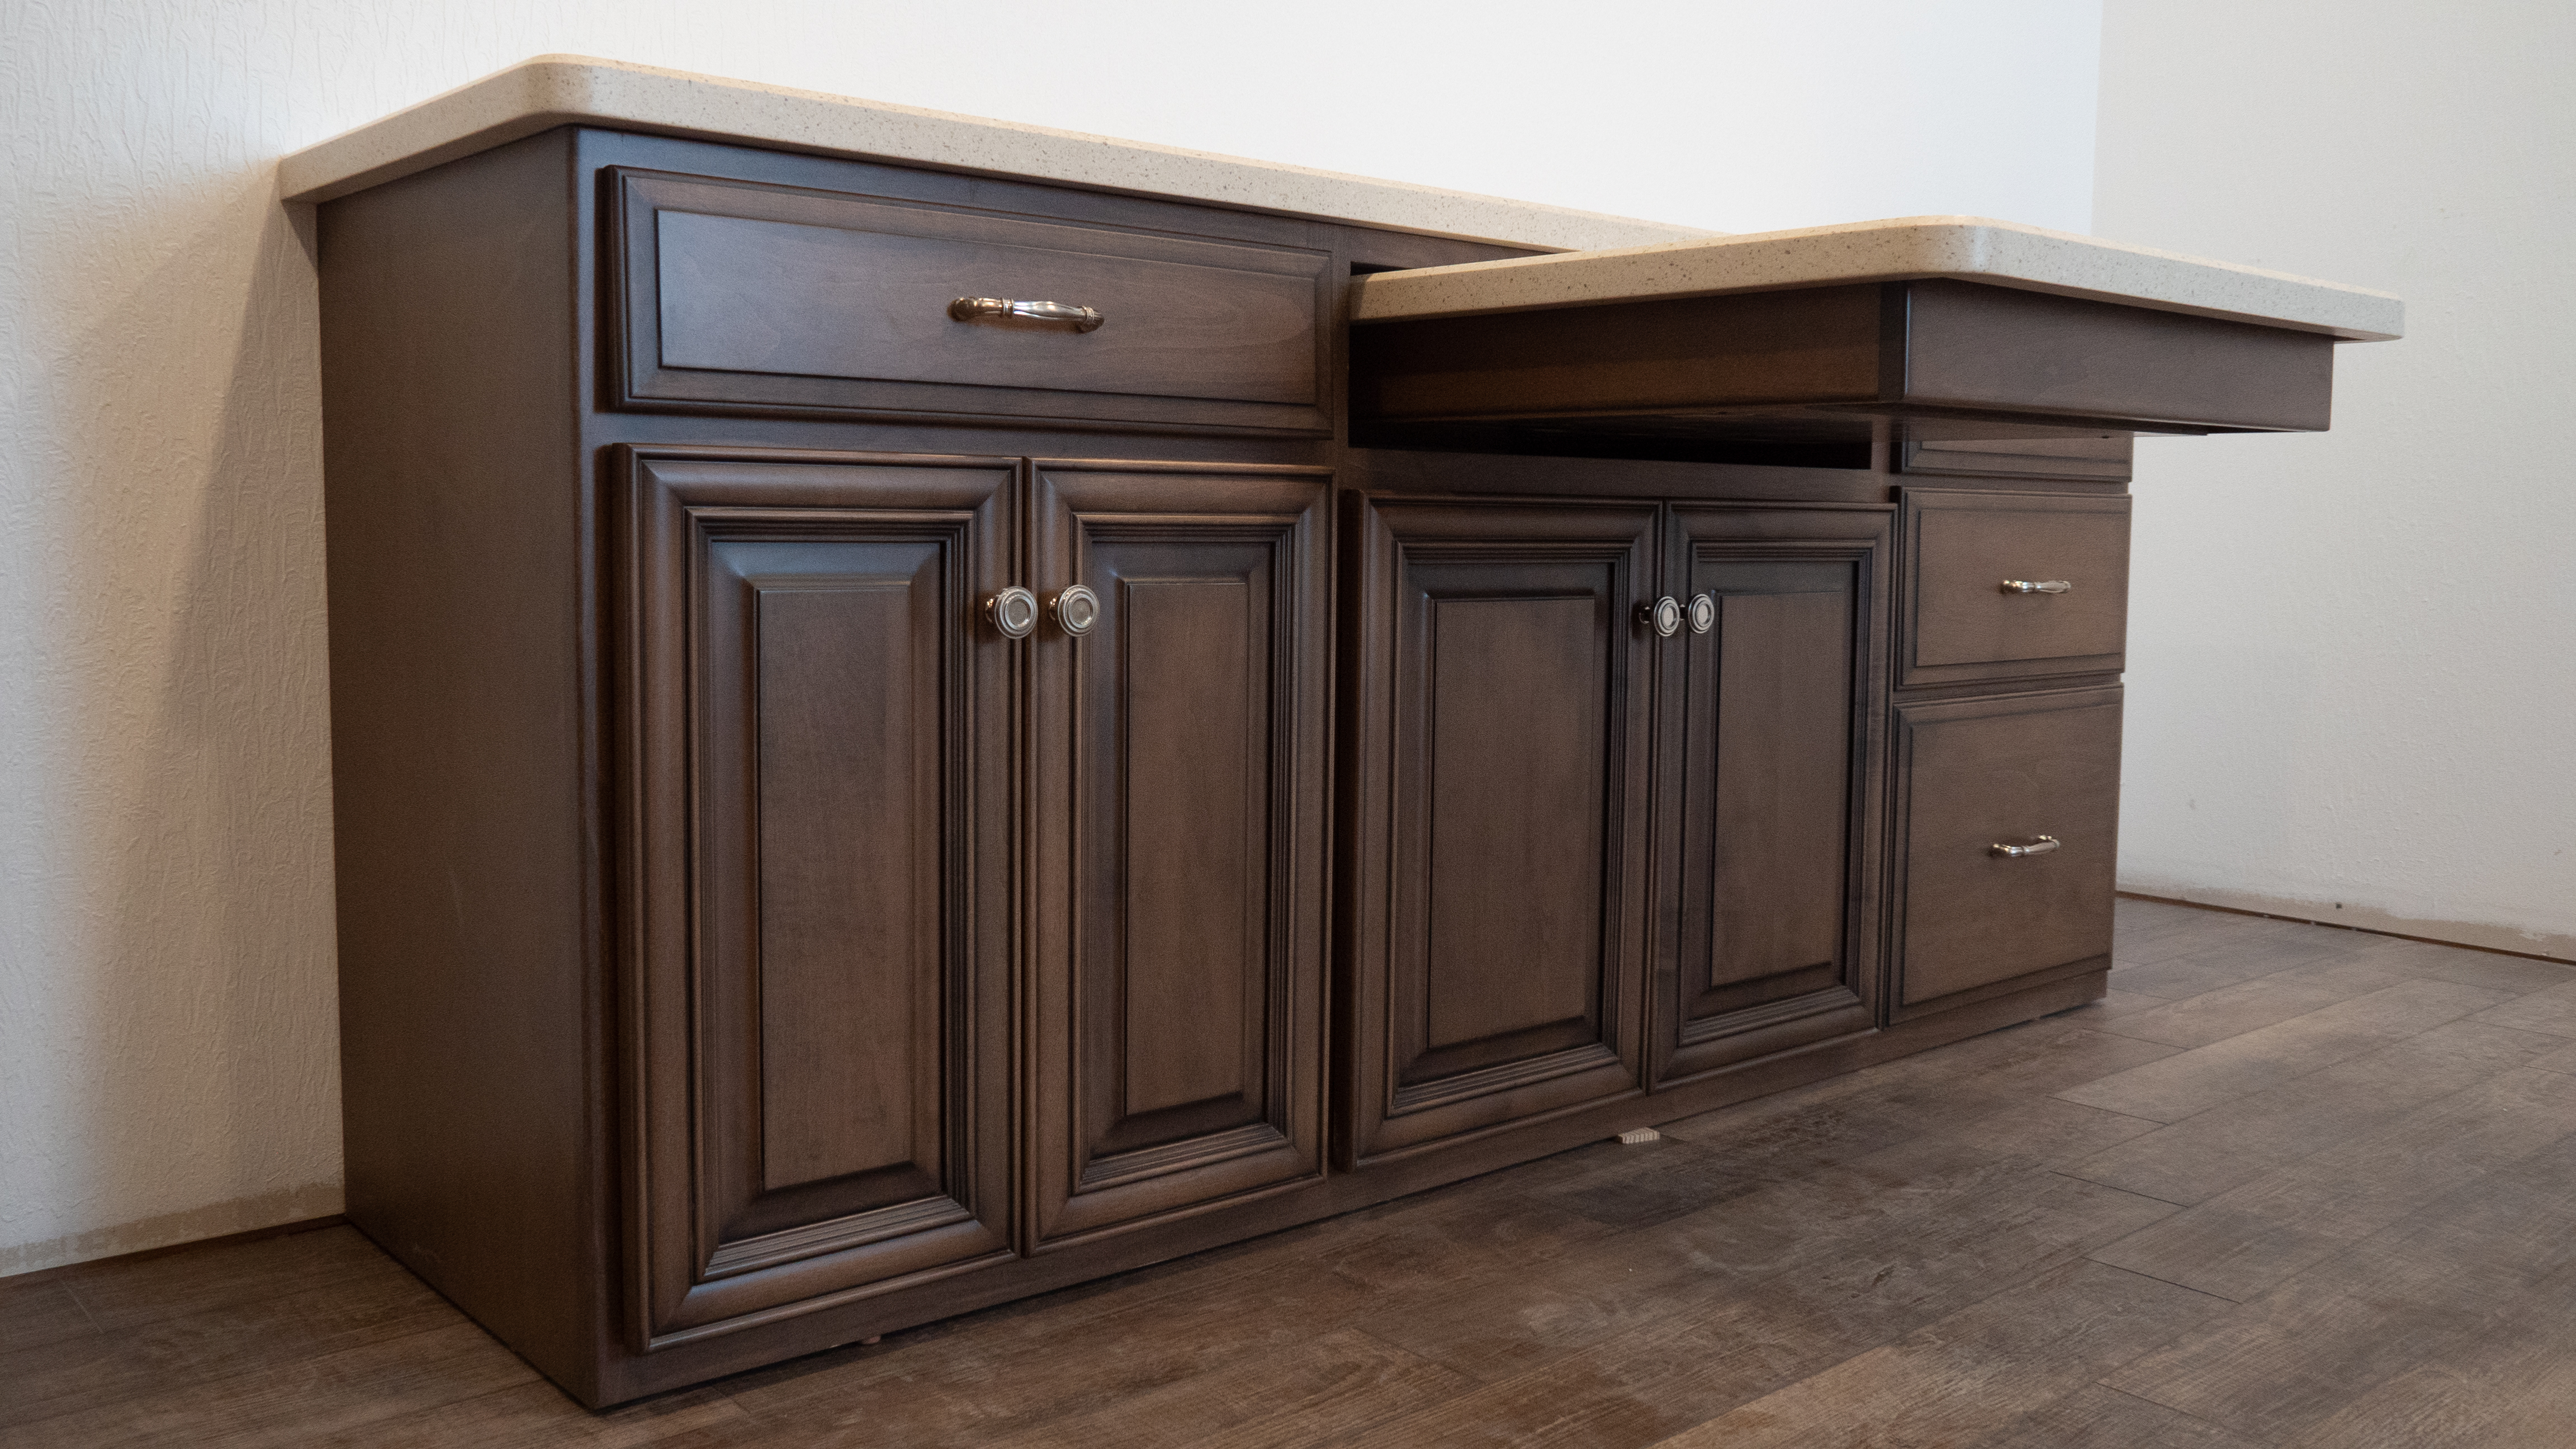 Custom cabinets with pullout table